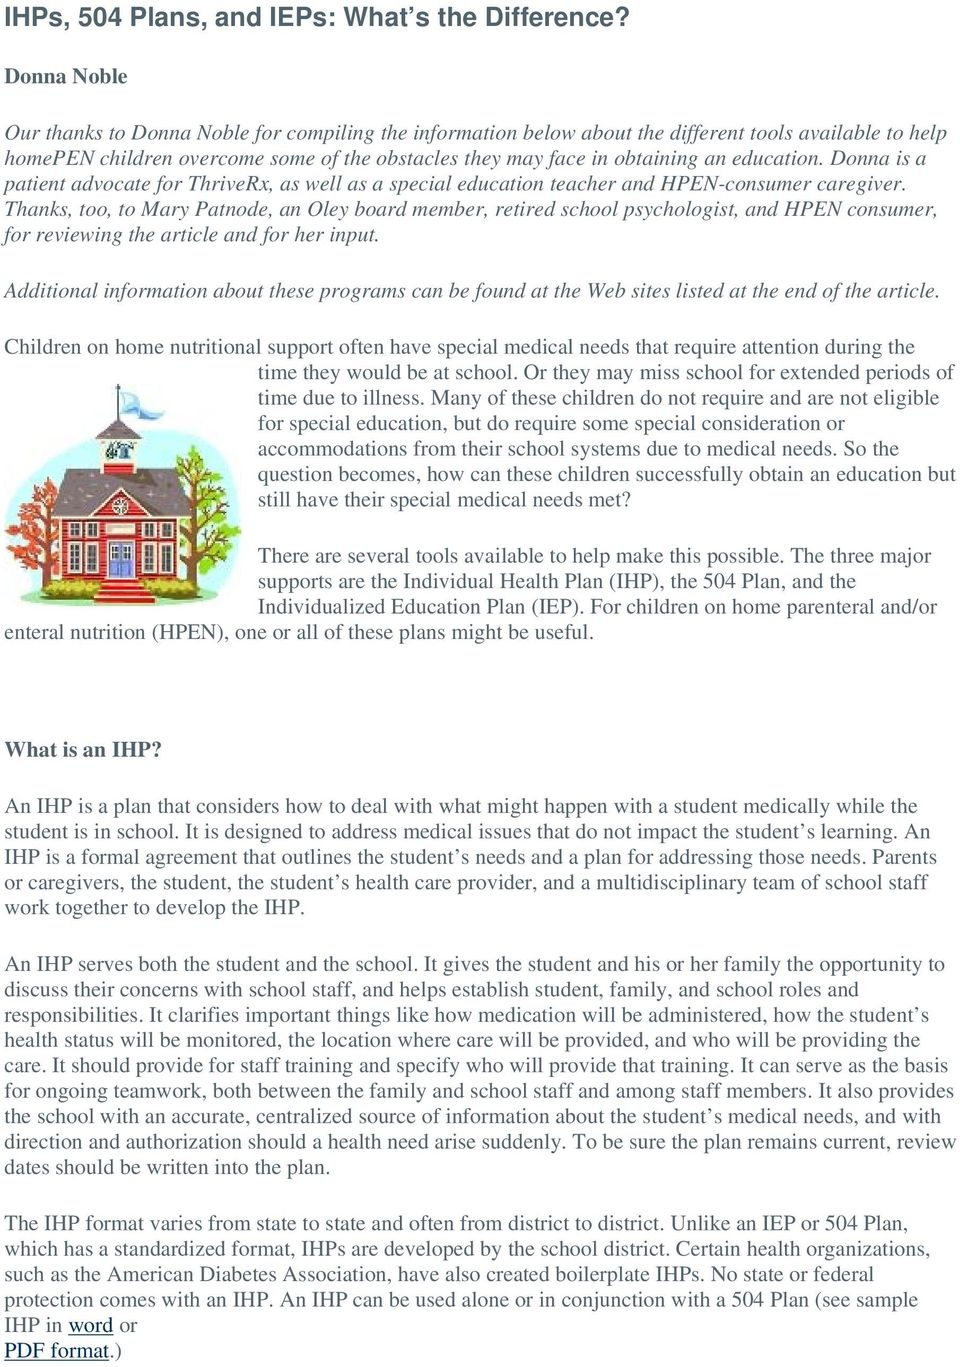 504 Plan Or Iep Whats Difference >> Ihps 504 Plans And Ieps What S The Difference Pdf